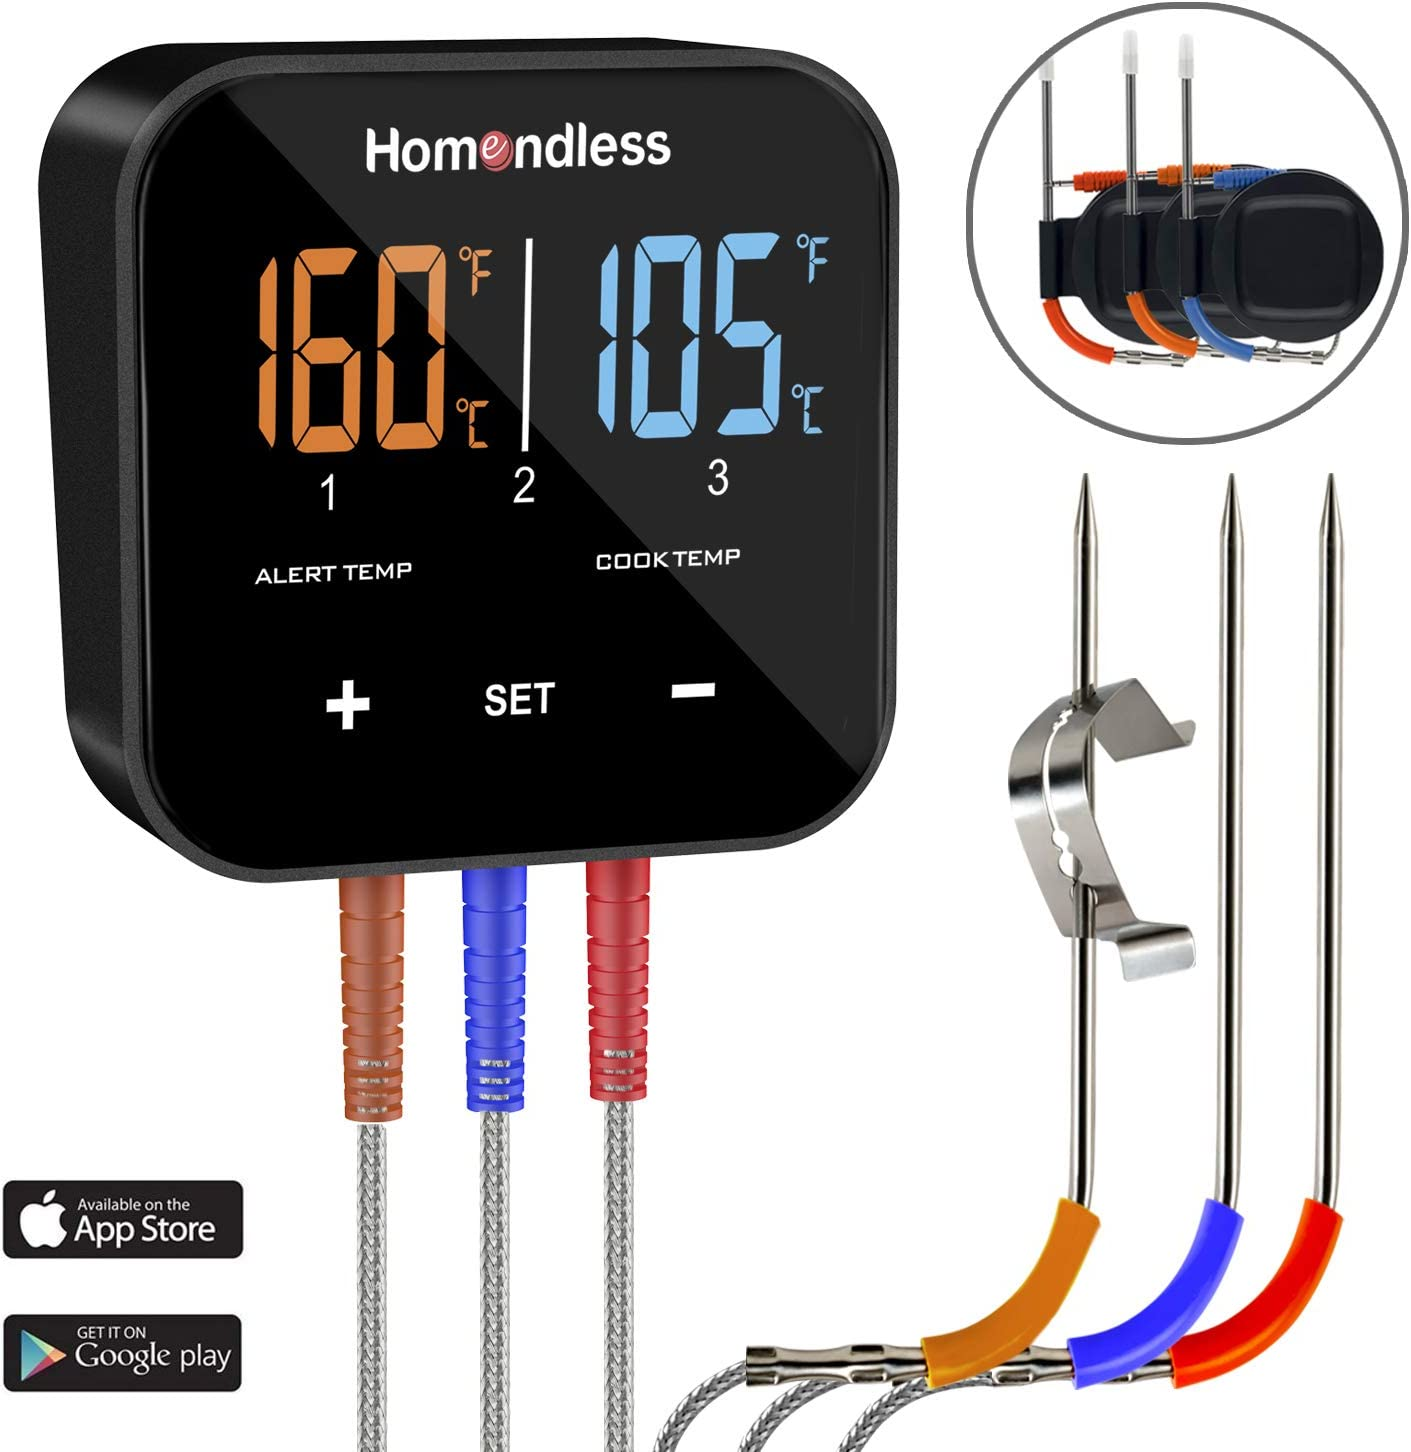 Wireless Meat Thermometer Digital Bluetooth BBQ Thermometer APP Controlled with 3 Probes, Alarm Monitor, Perfect for Grill Smoker Oven Kitchen Food Cooking, Support iOS & Android